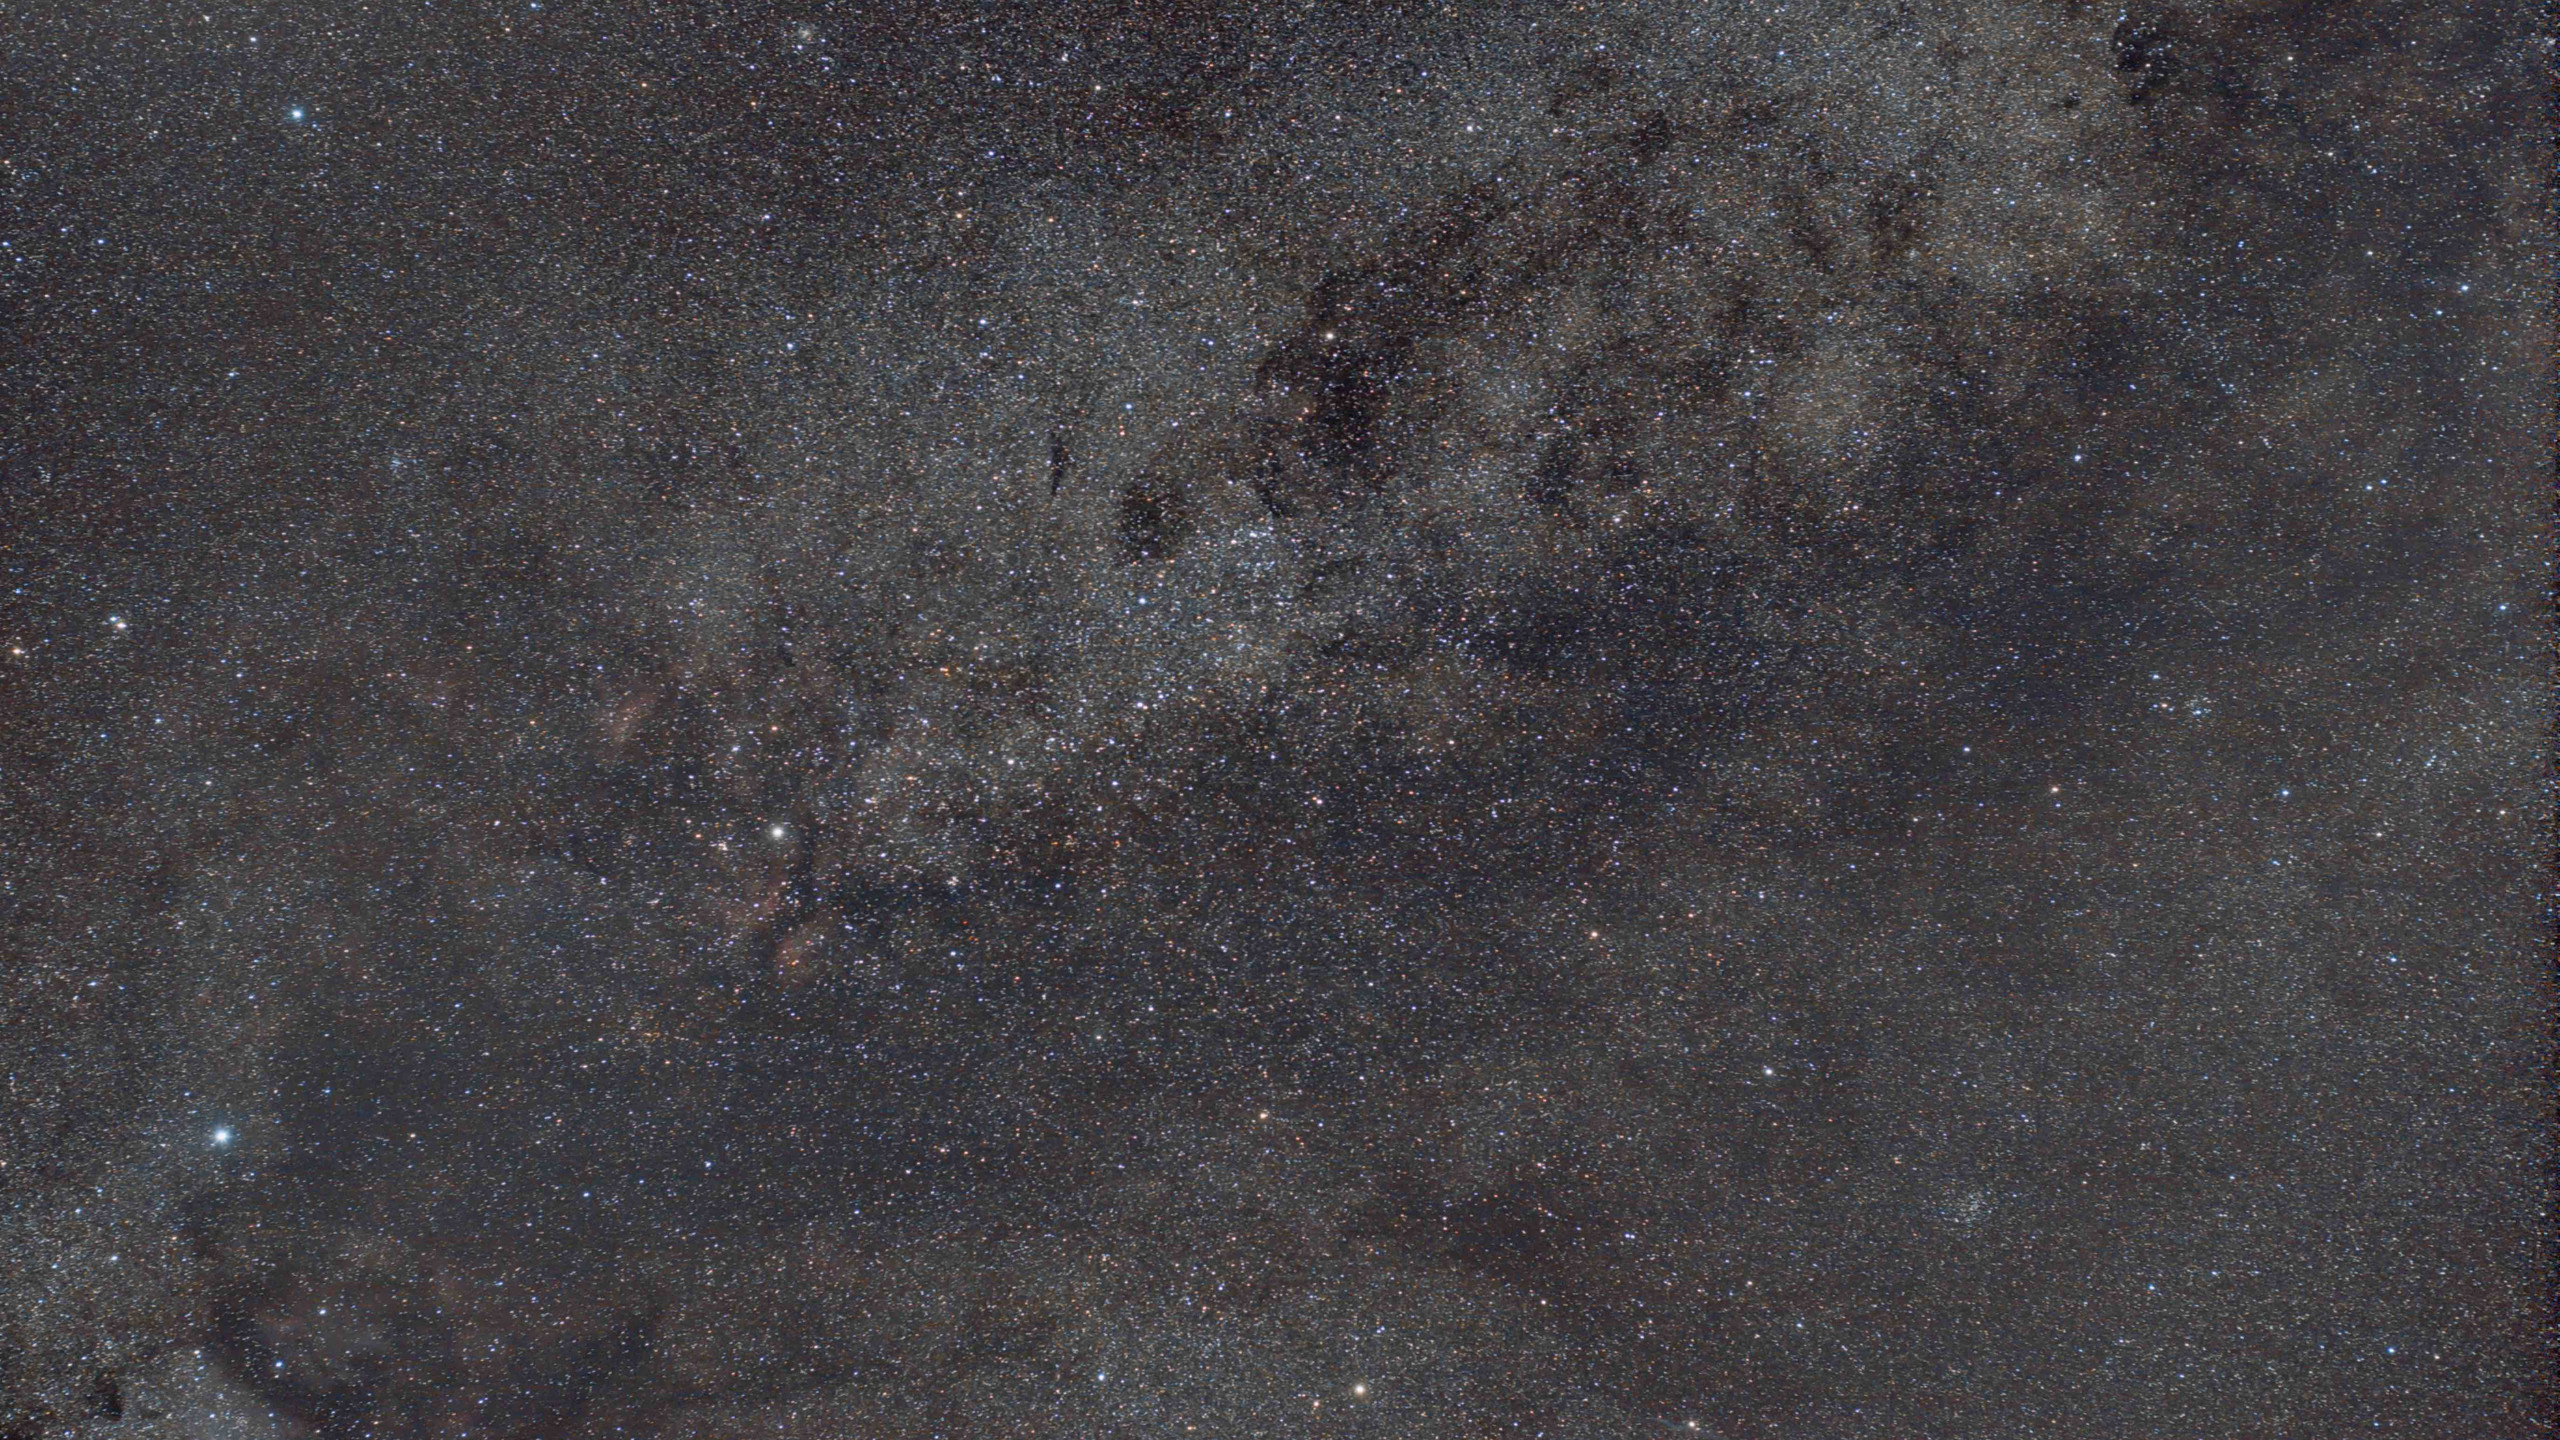 Cygnus DSLR wide field Astrophotography with the Omegon Mini Track LX2 by turning the knob. Deep sky imaging from Nevada